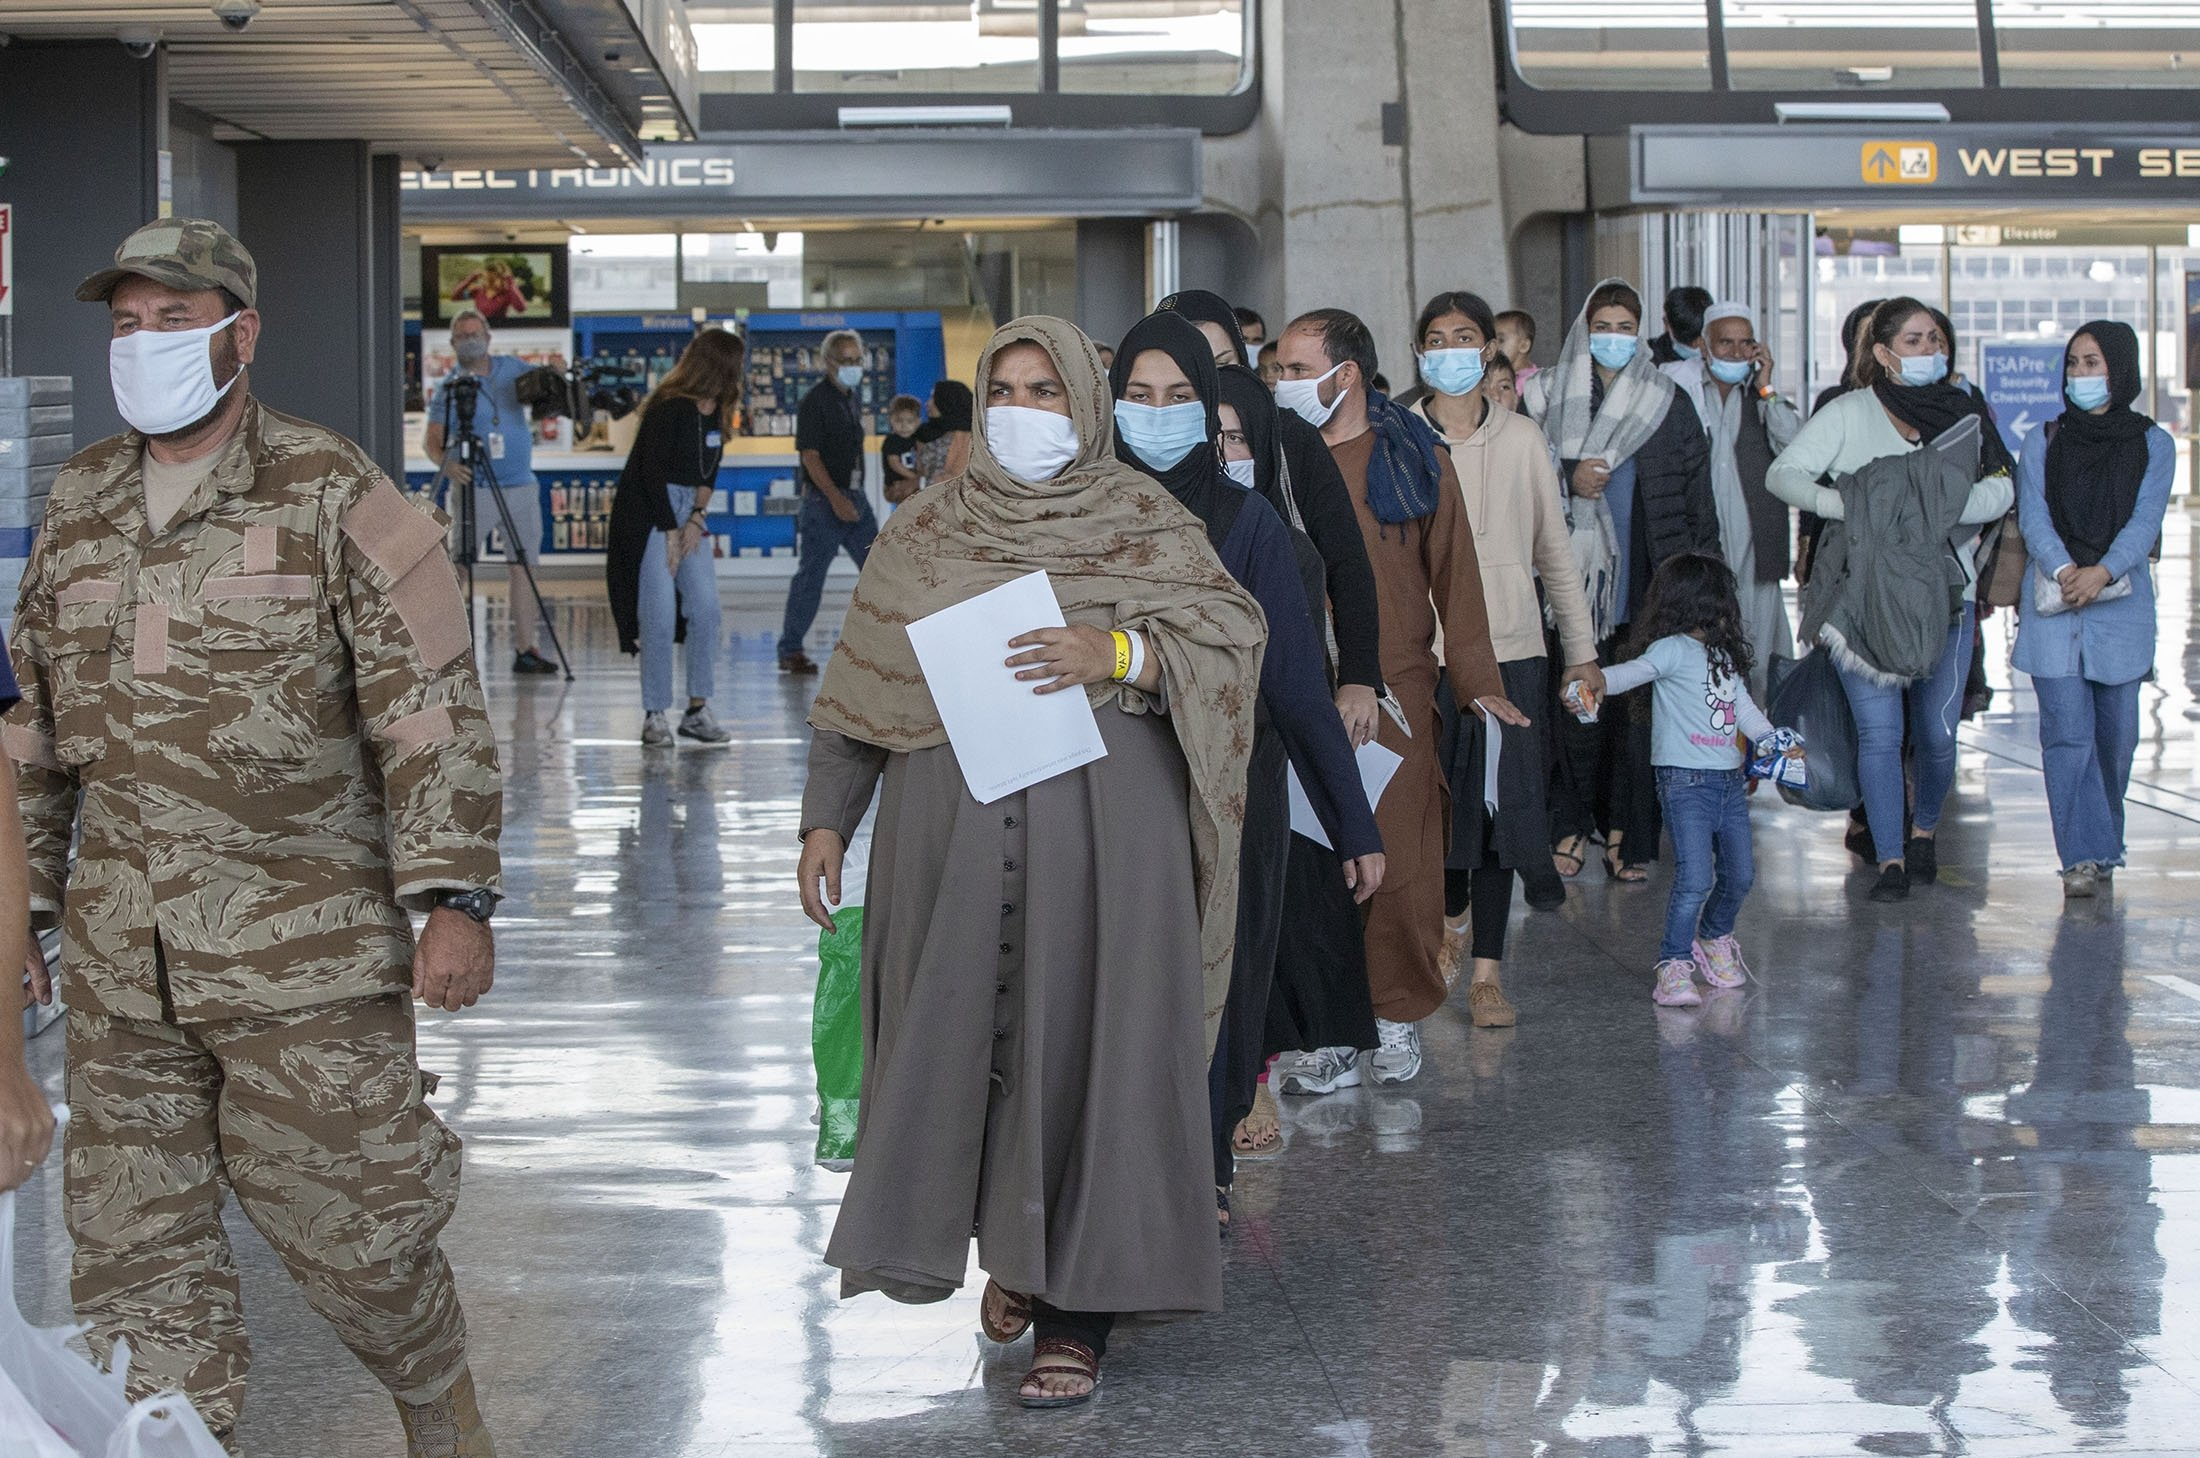 Families evacuated from Kabul, Afghanistan, walk through the terminal to board a bus after they arrived at Washington Dulles International Airport, in Chantilly, Virginia, U.S., Aug. 28, 2021. (AP Photo)